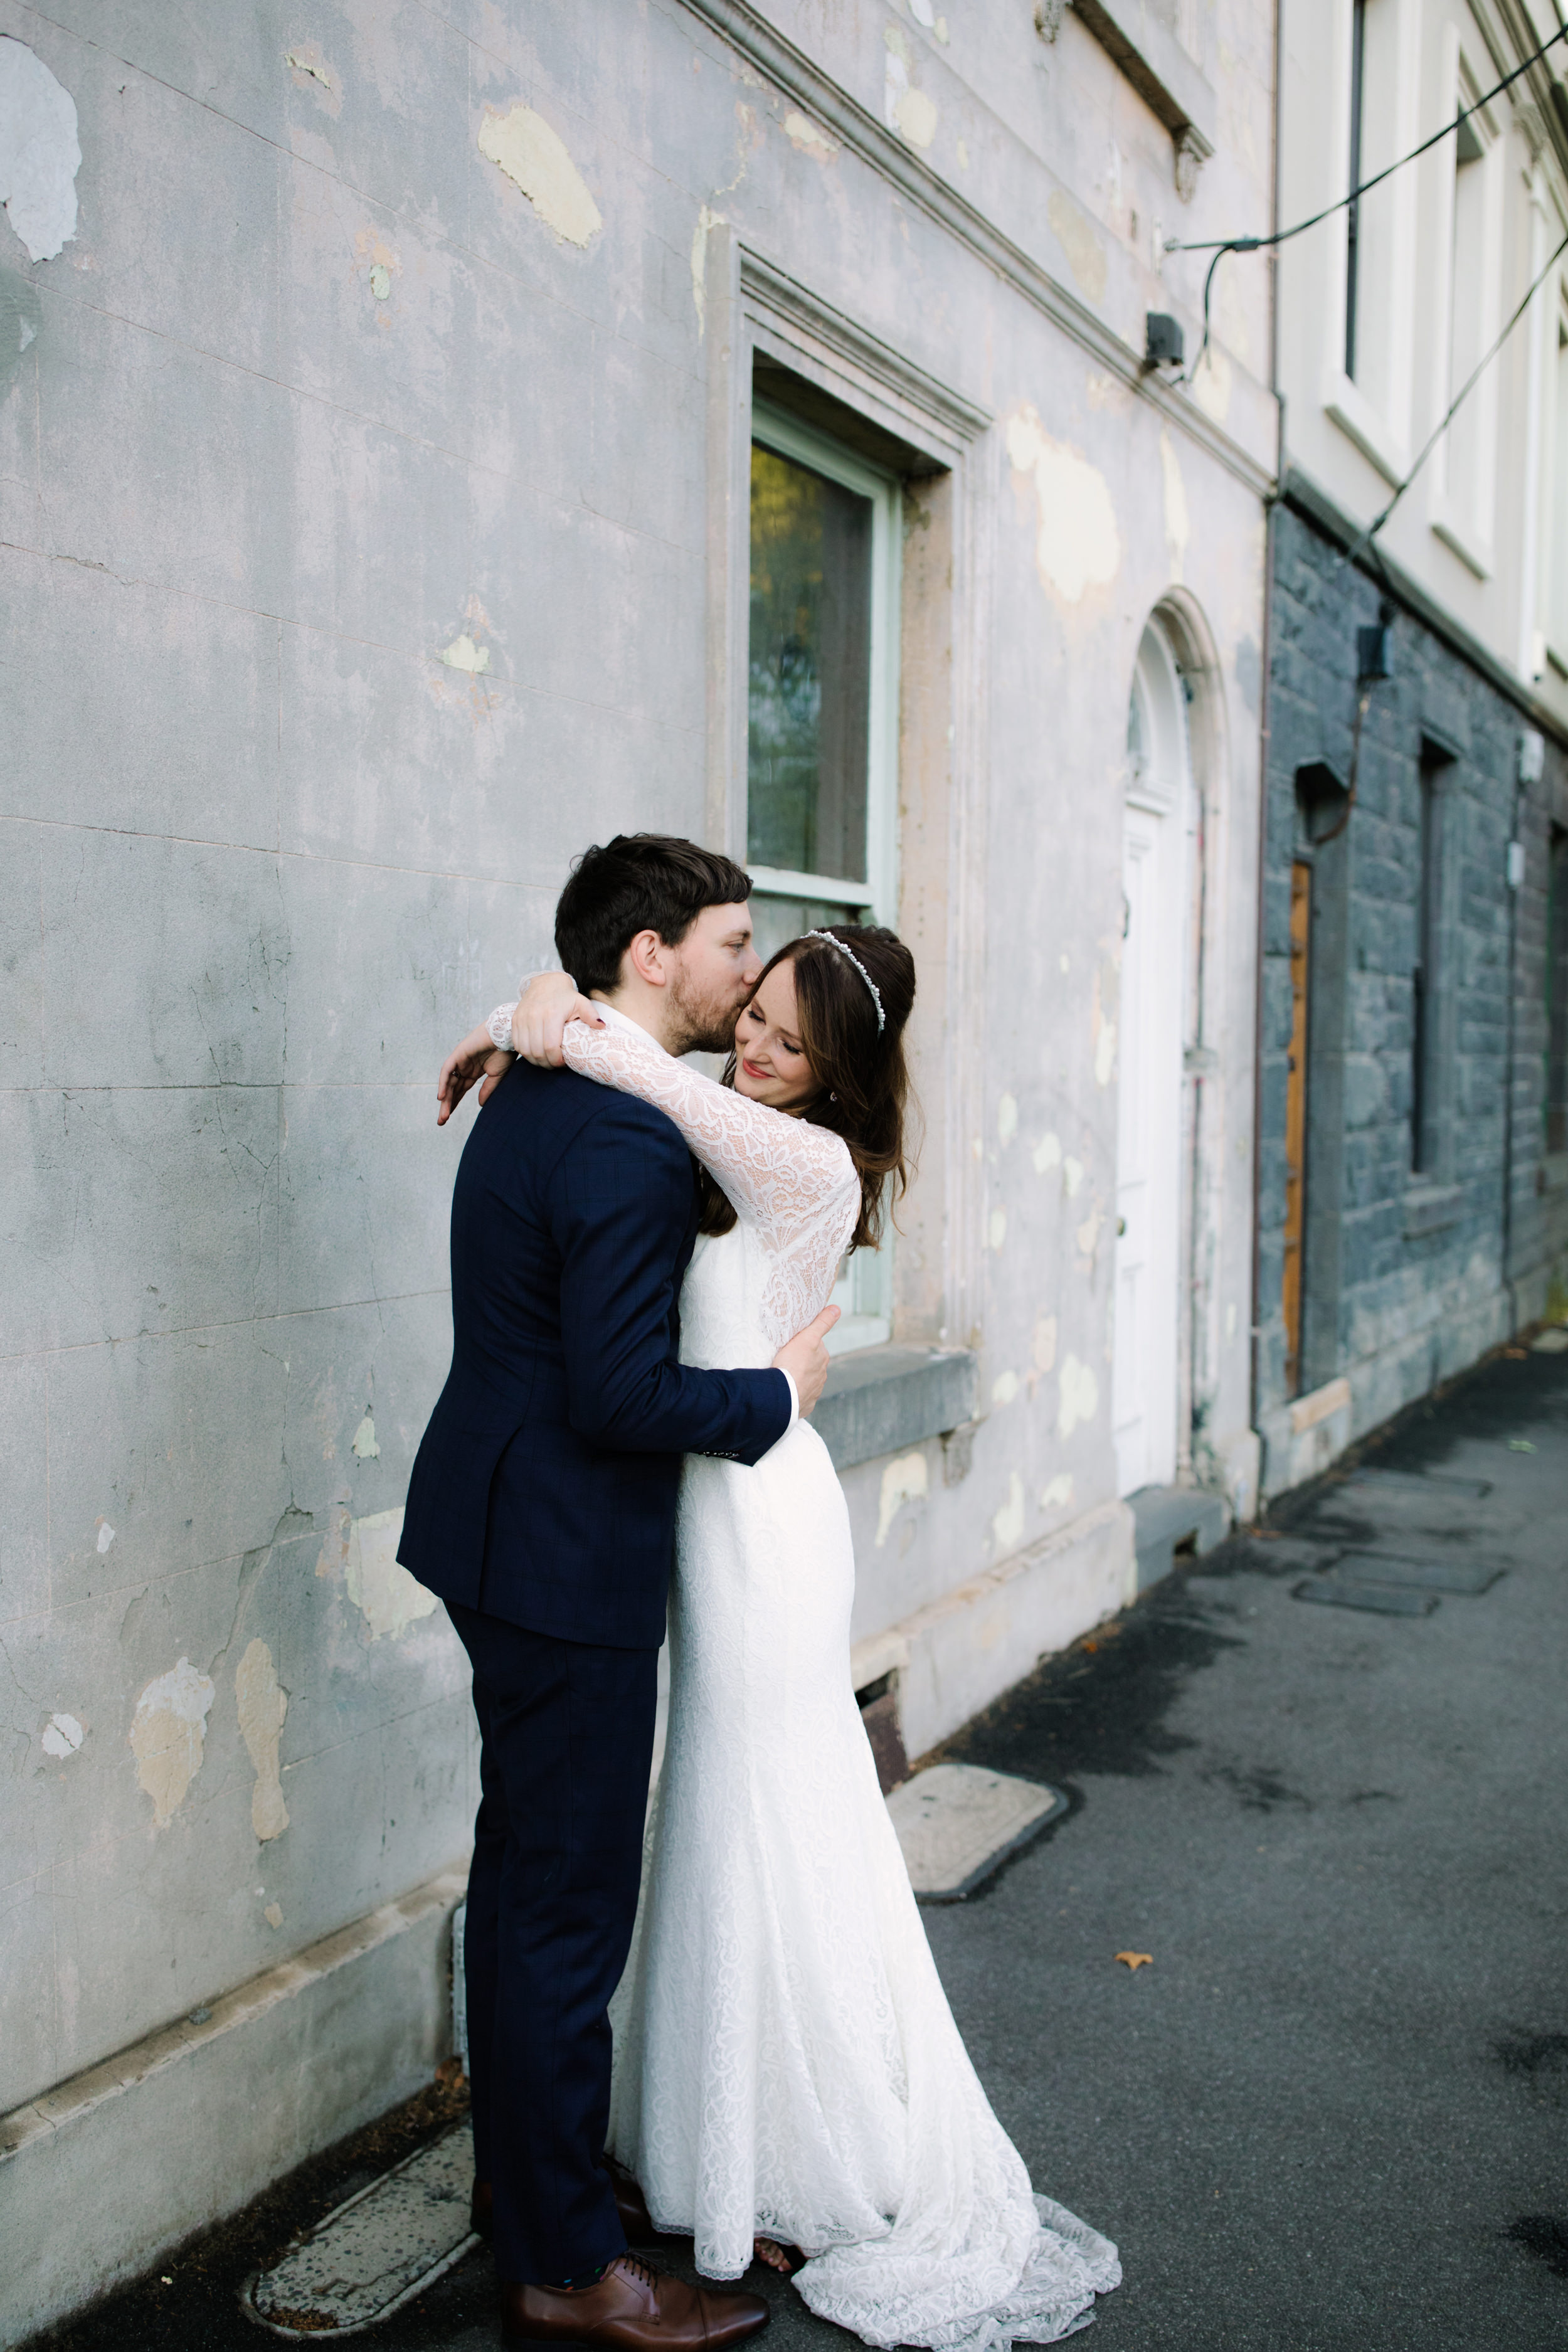 I_Got_You_Babe_Weddings_Emily_Matt_Rupert_Glasshaus_Melbourne0173.JPG